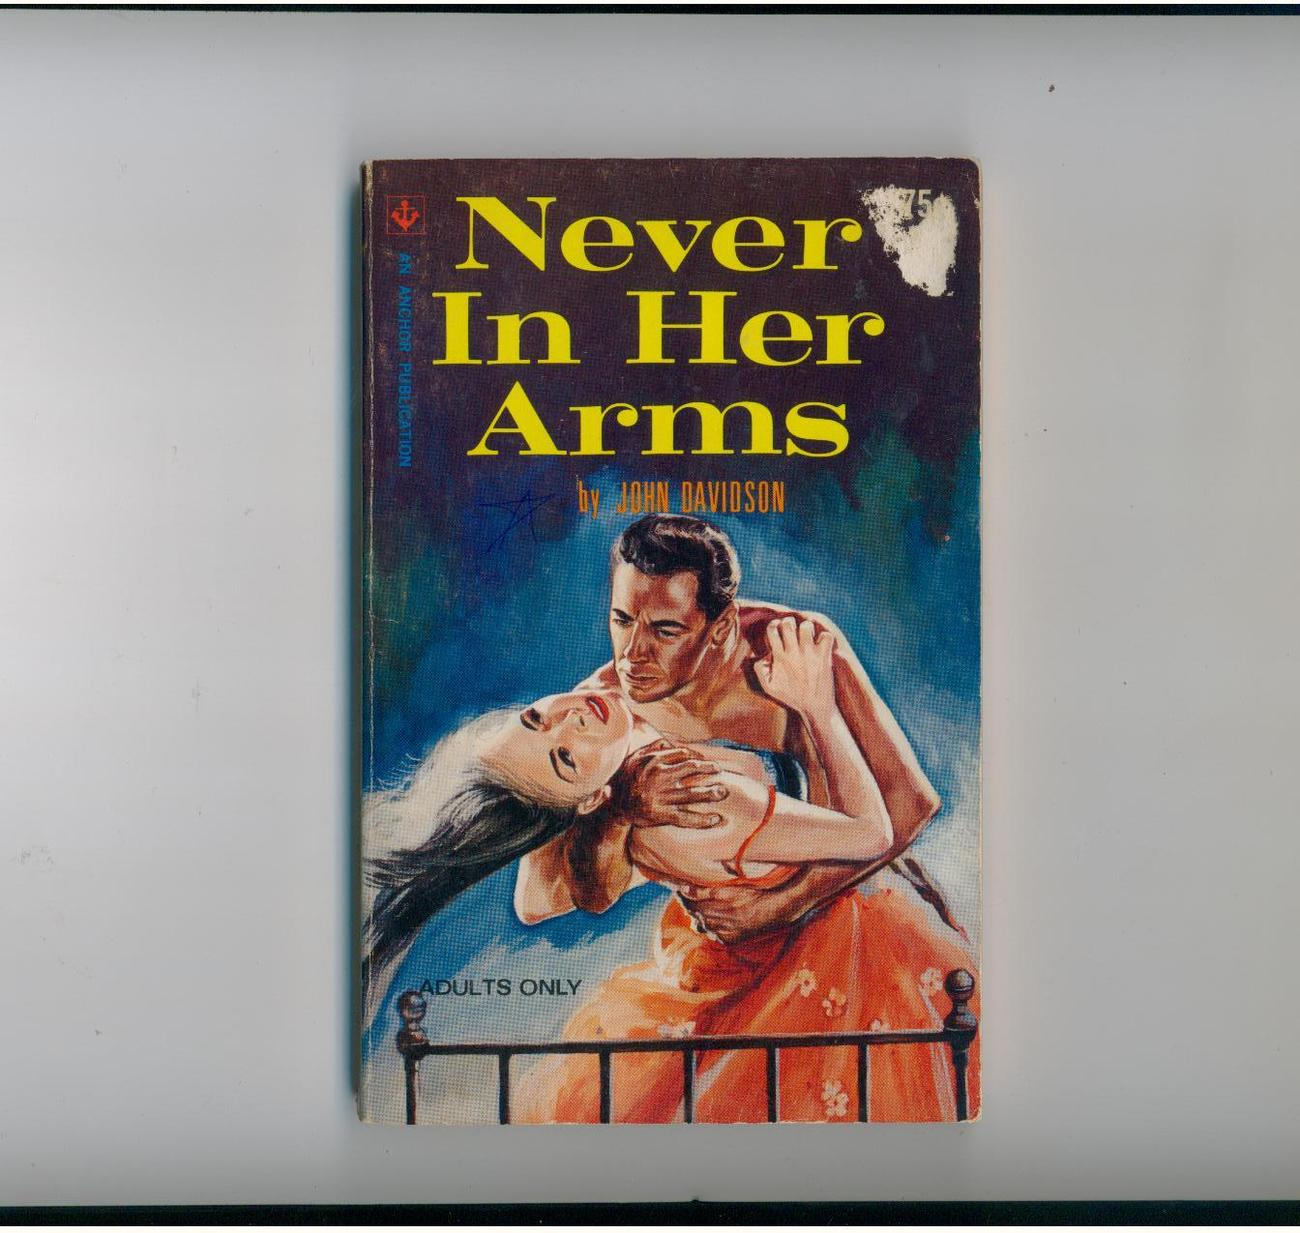 Primary image for Never In Her Arms John Davidson 1965 1st scarce